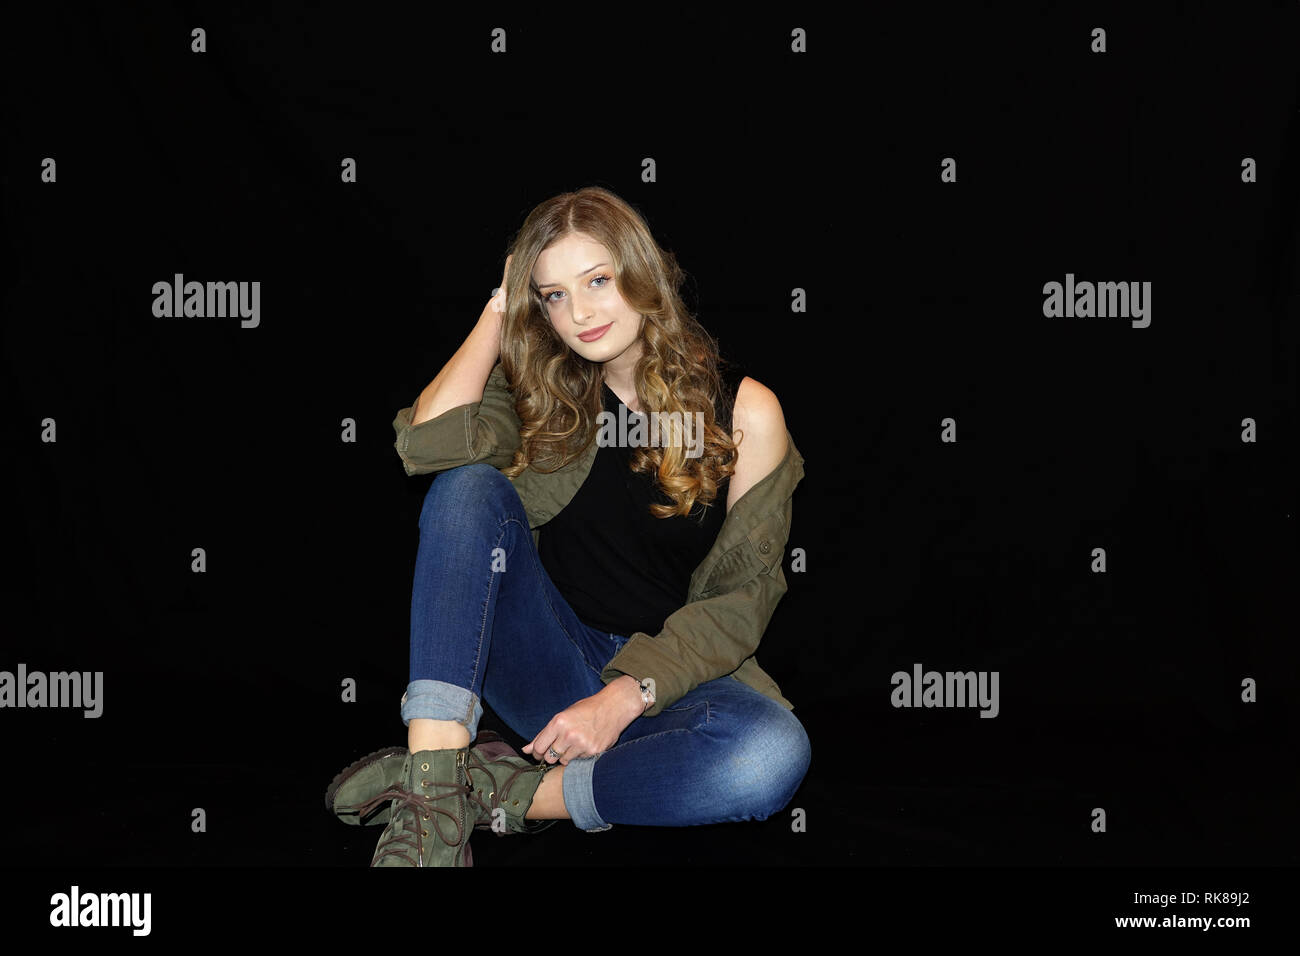 A country girl using classic poses - Stock Image